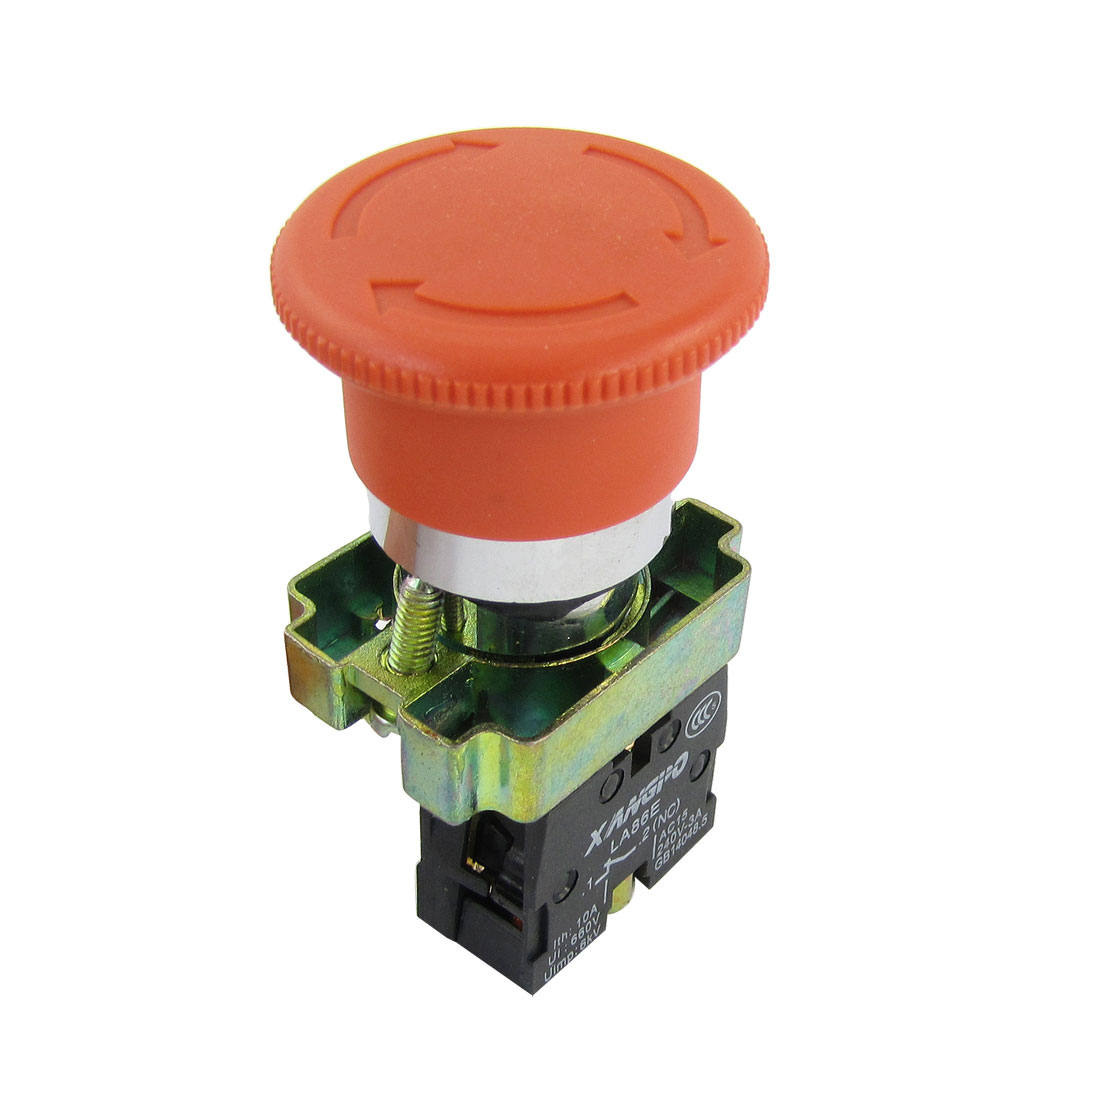 AC 240V 3A SPST Red Sign Mushroom Head Emergency Stop Push Button Switch